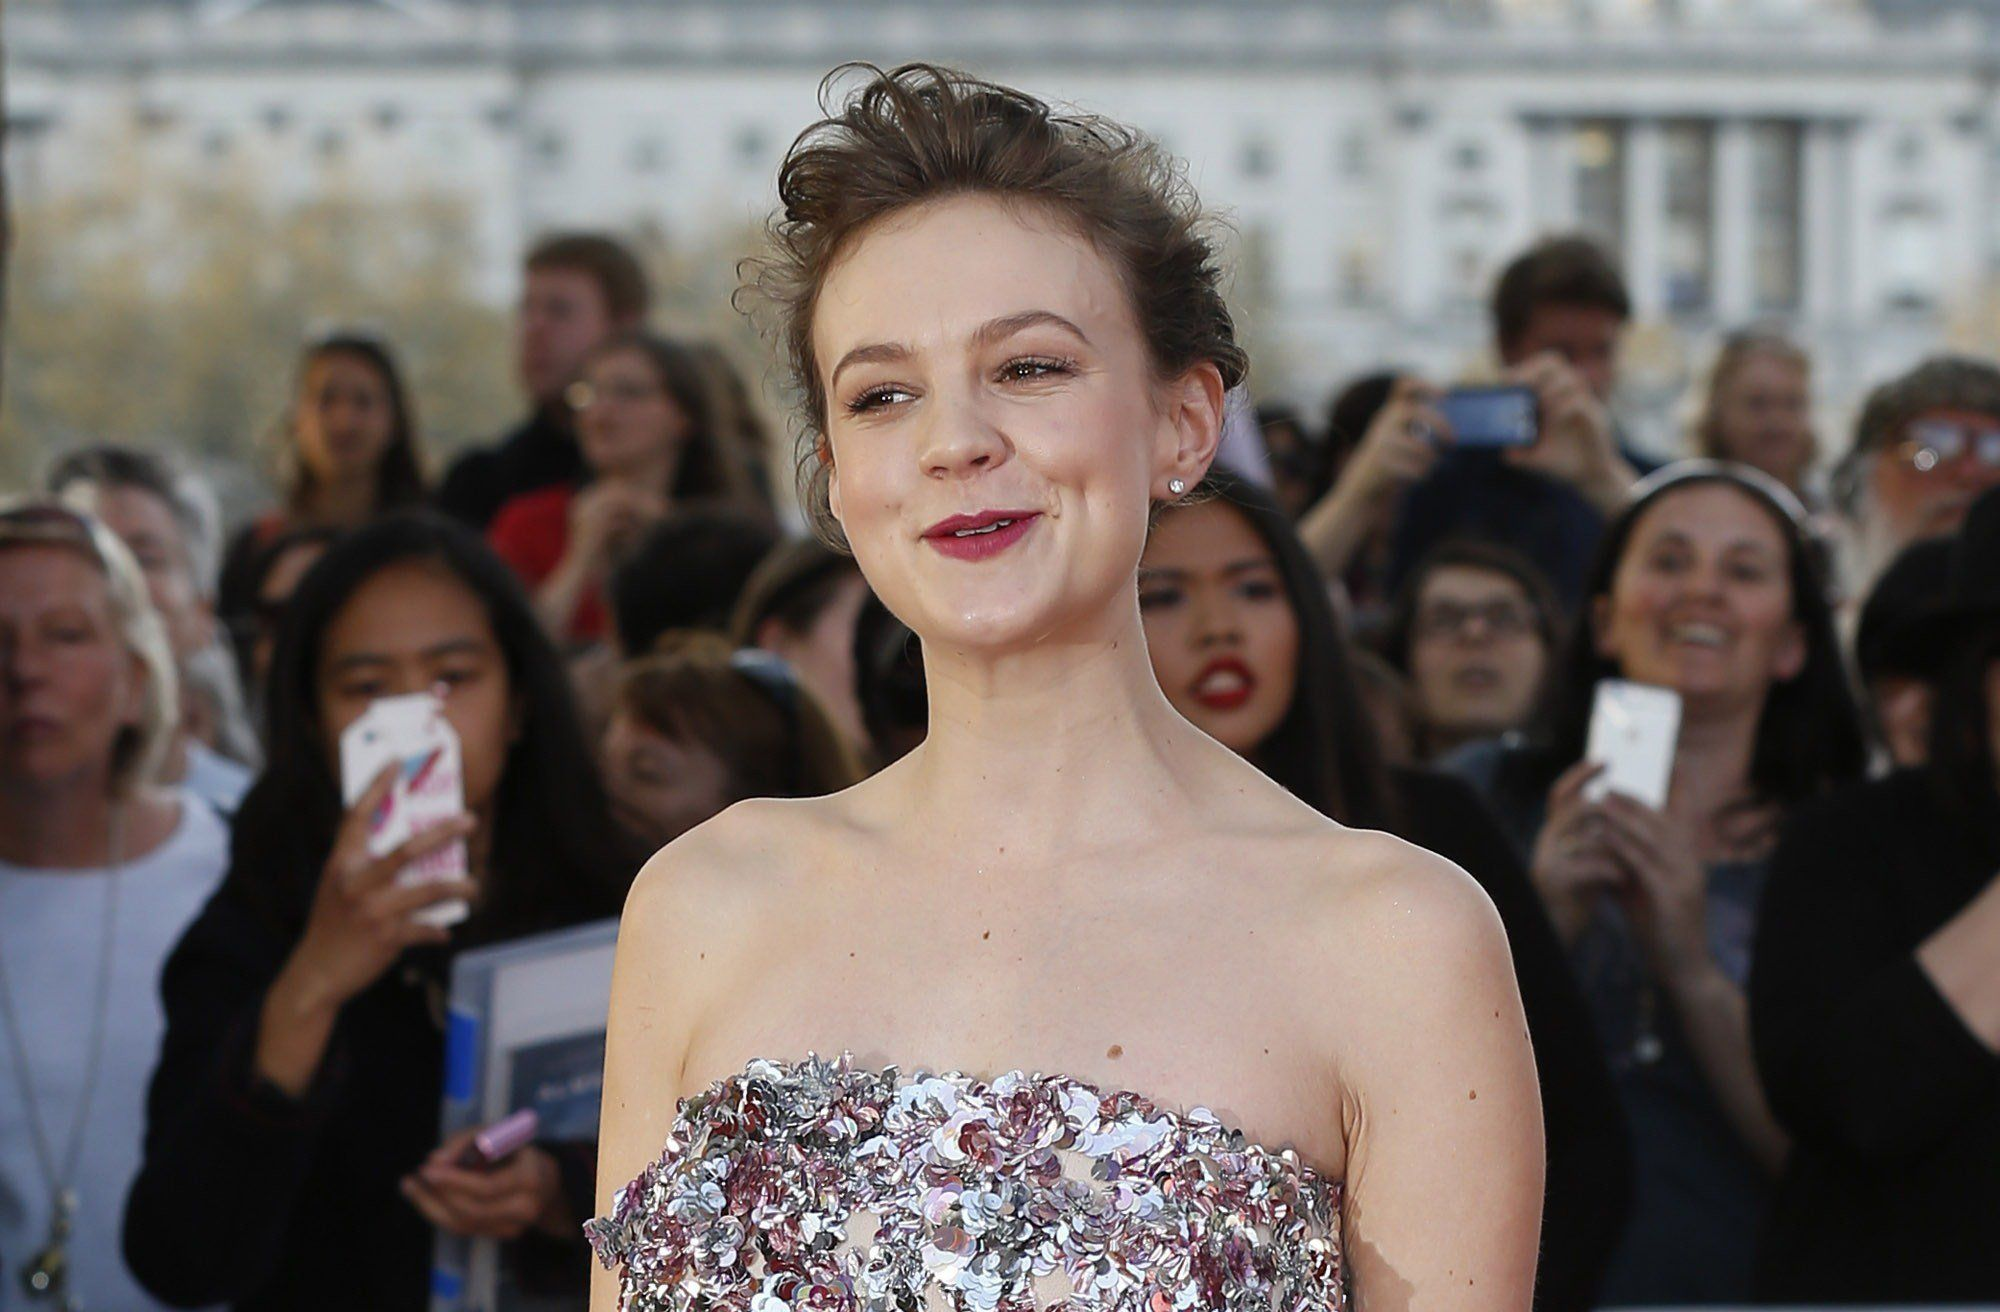 British actress Carey Mulligan poses for photographers on the red carpet on the red carpet ahead of the world premiere of the film 'Far From The Madding Crowd' in central London on April 15, 2015. AFP PHOTO / JUSTIN TALLIS        (Photo credit should read JUSTIN TALLIS/AFP/Getty Images)